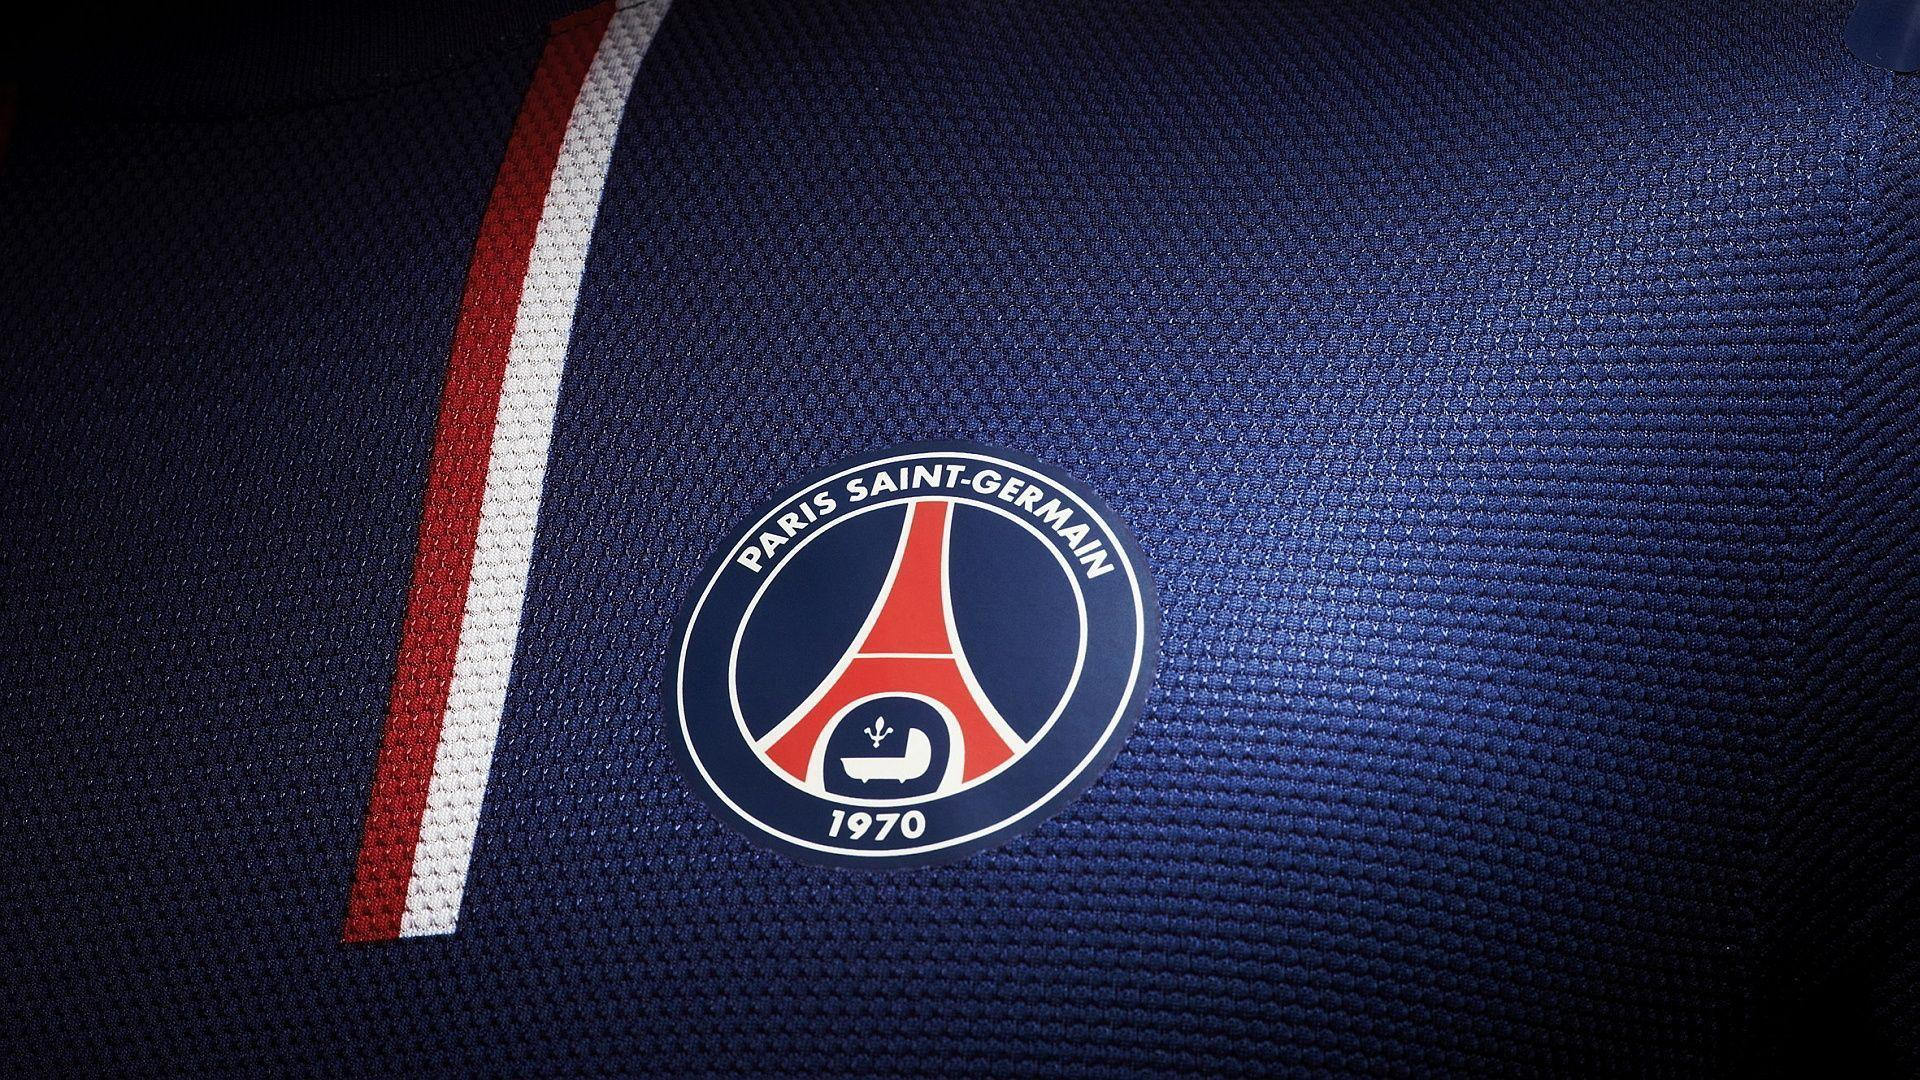 PSG Paris Saint Germain 2015 Shirt Badge HD Wallpaper Free Desktop